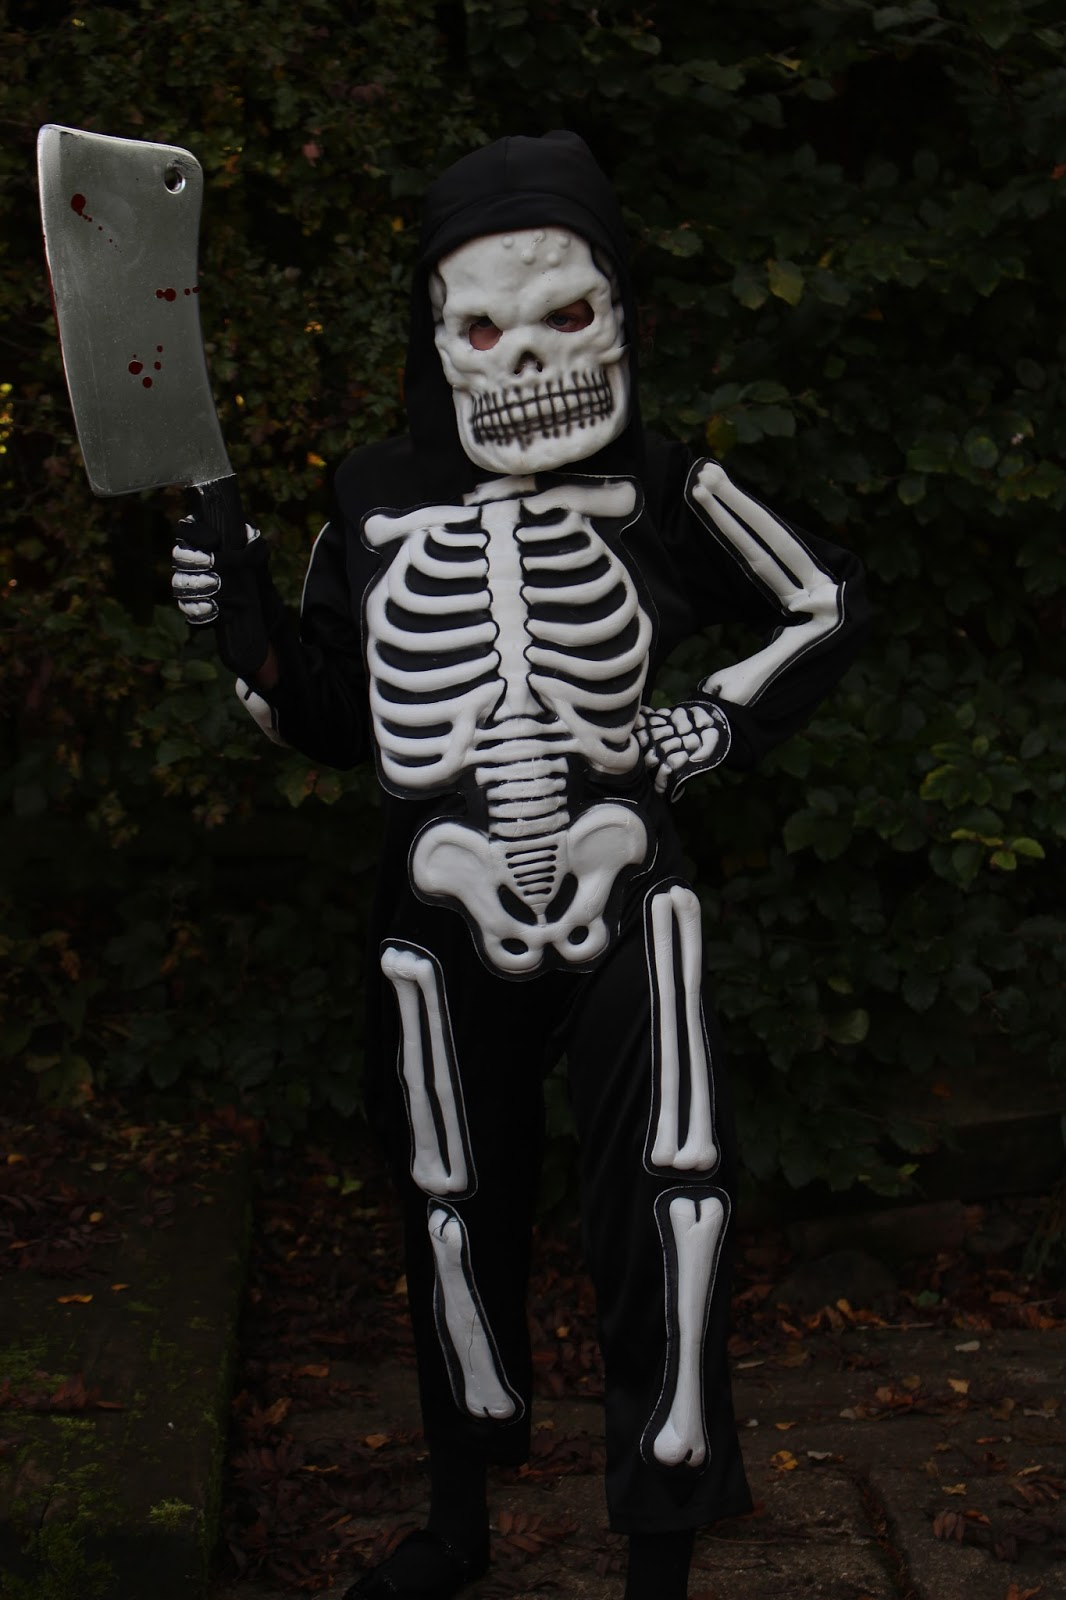 Child's skeleton costume.